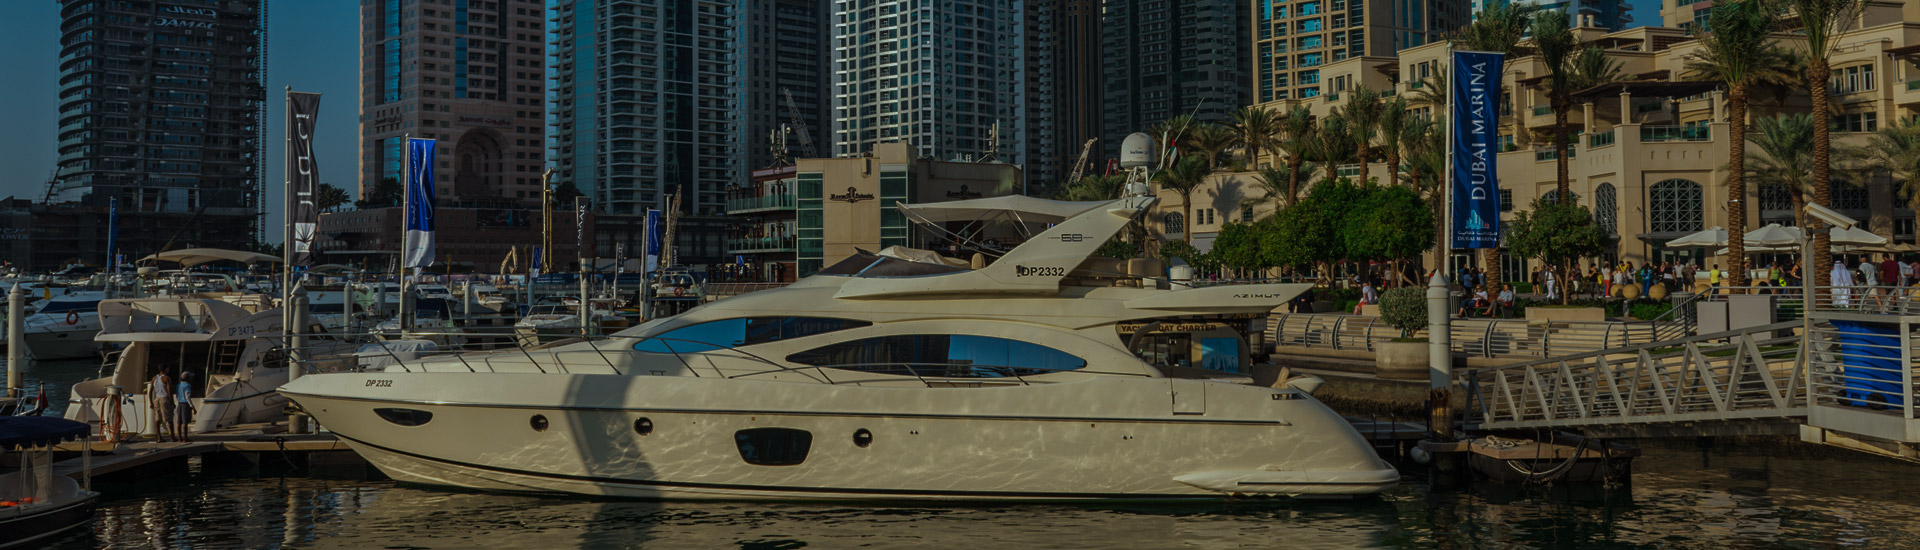 Luxury Yacht Charters in Dubai and the UAE